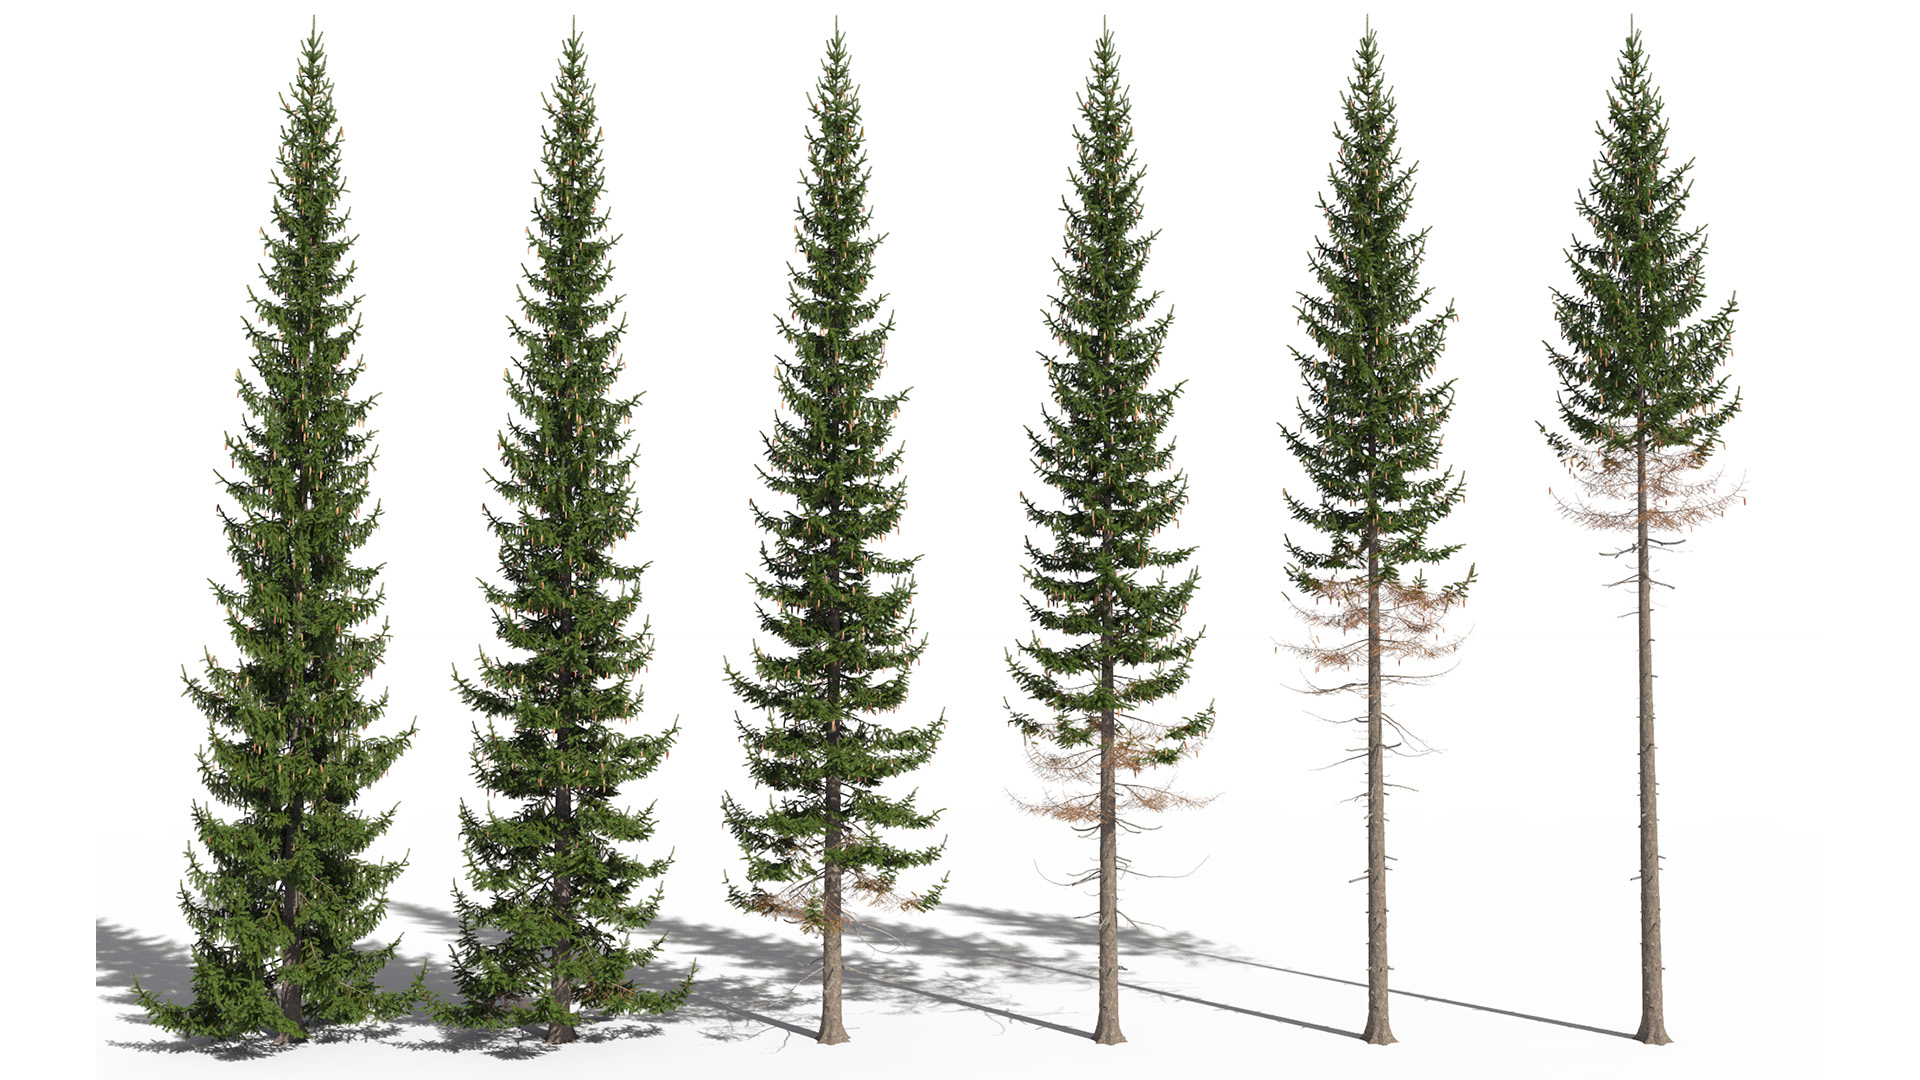 3D model of the Norway spruce Picea abies